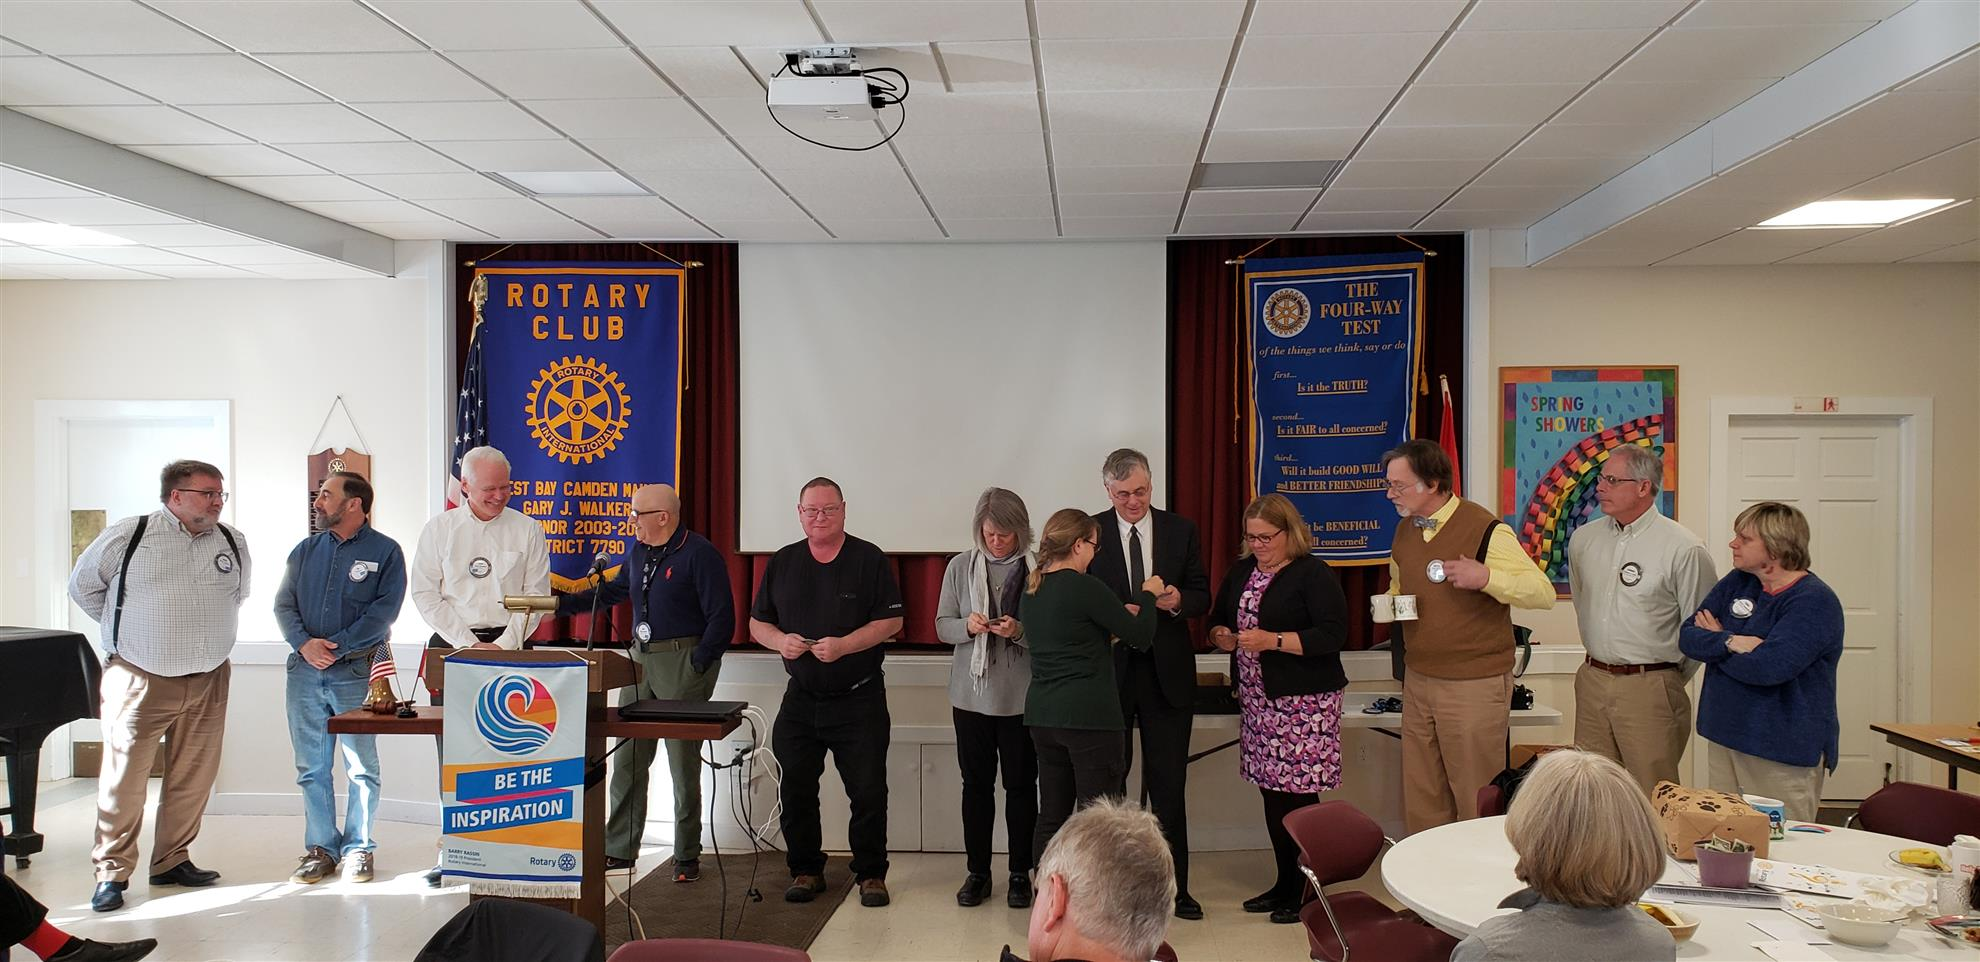 January 3, 2018 Meeting of West Bay Rotary (Jan 03, 2019)